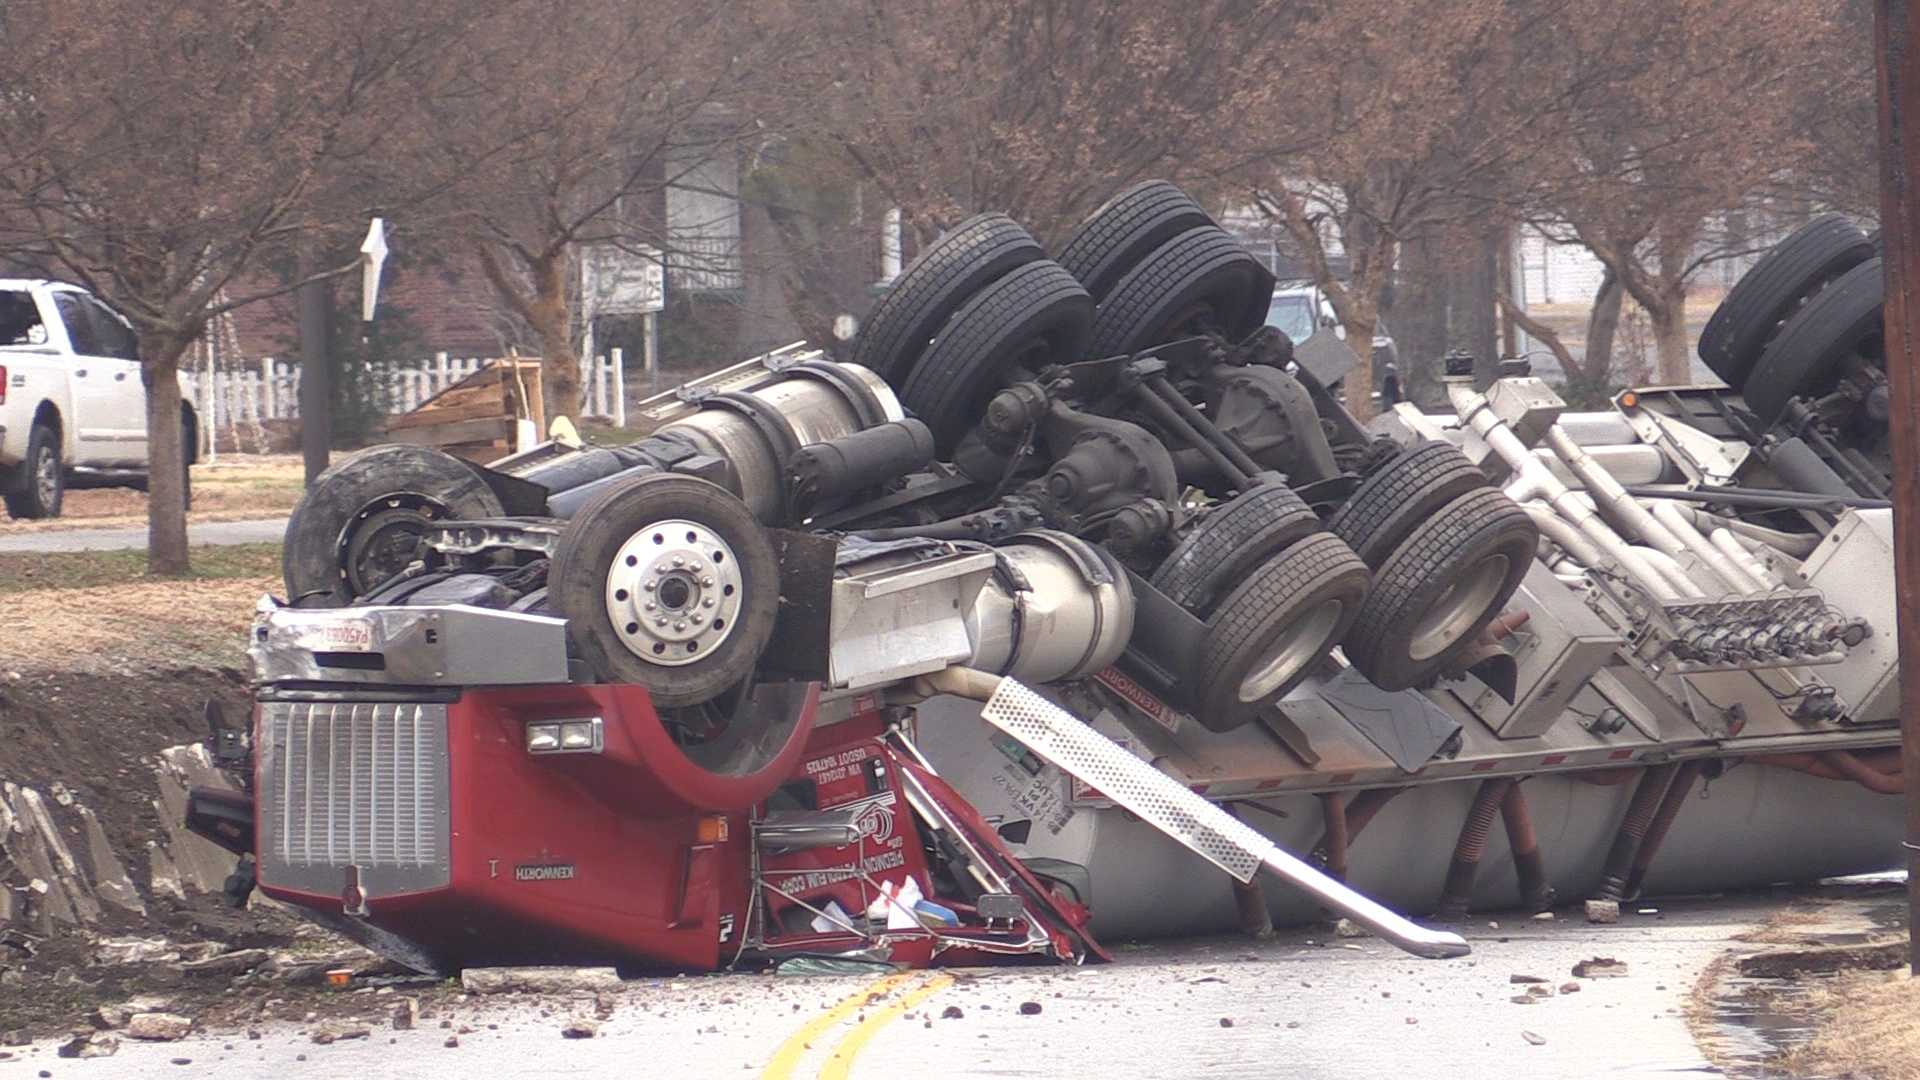 An overturned gas tanker and spill shuts down North Main Street in Belton.